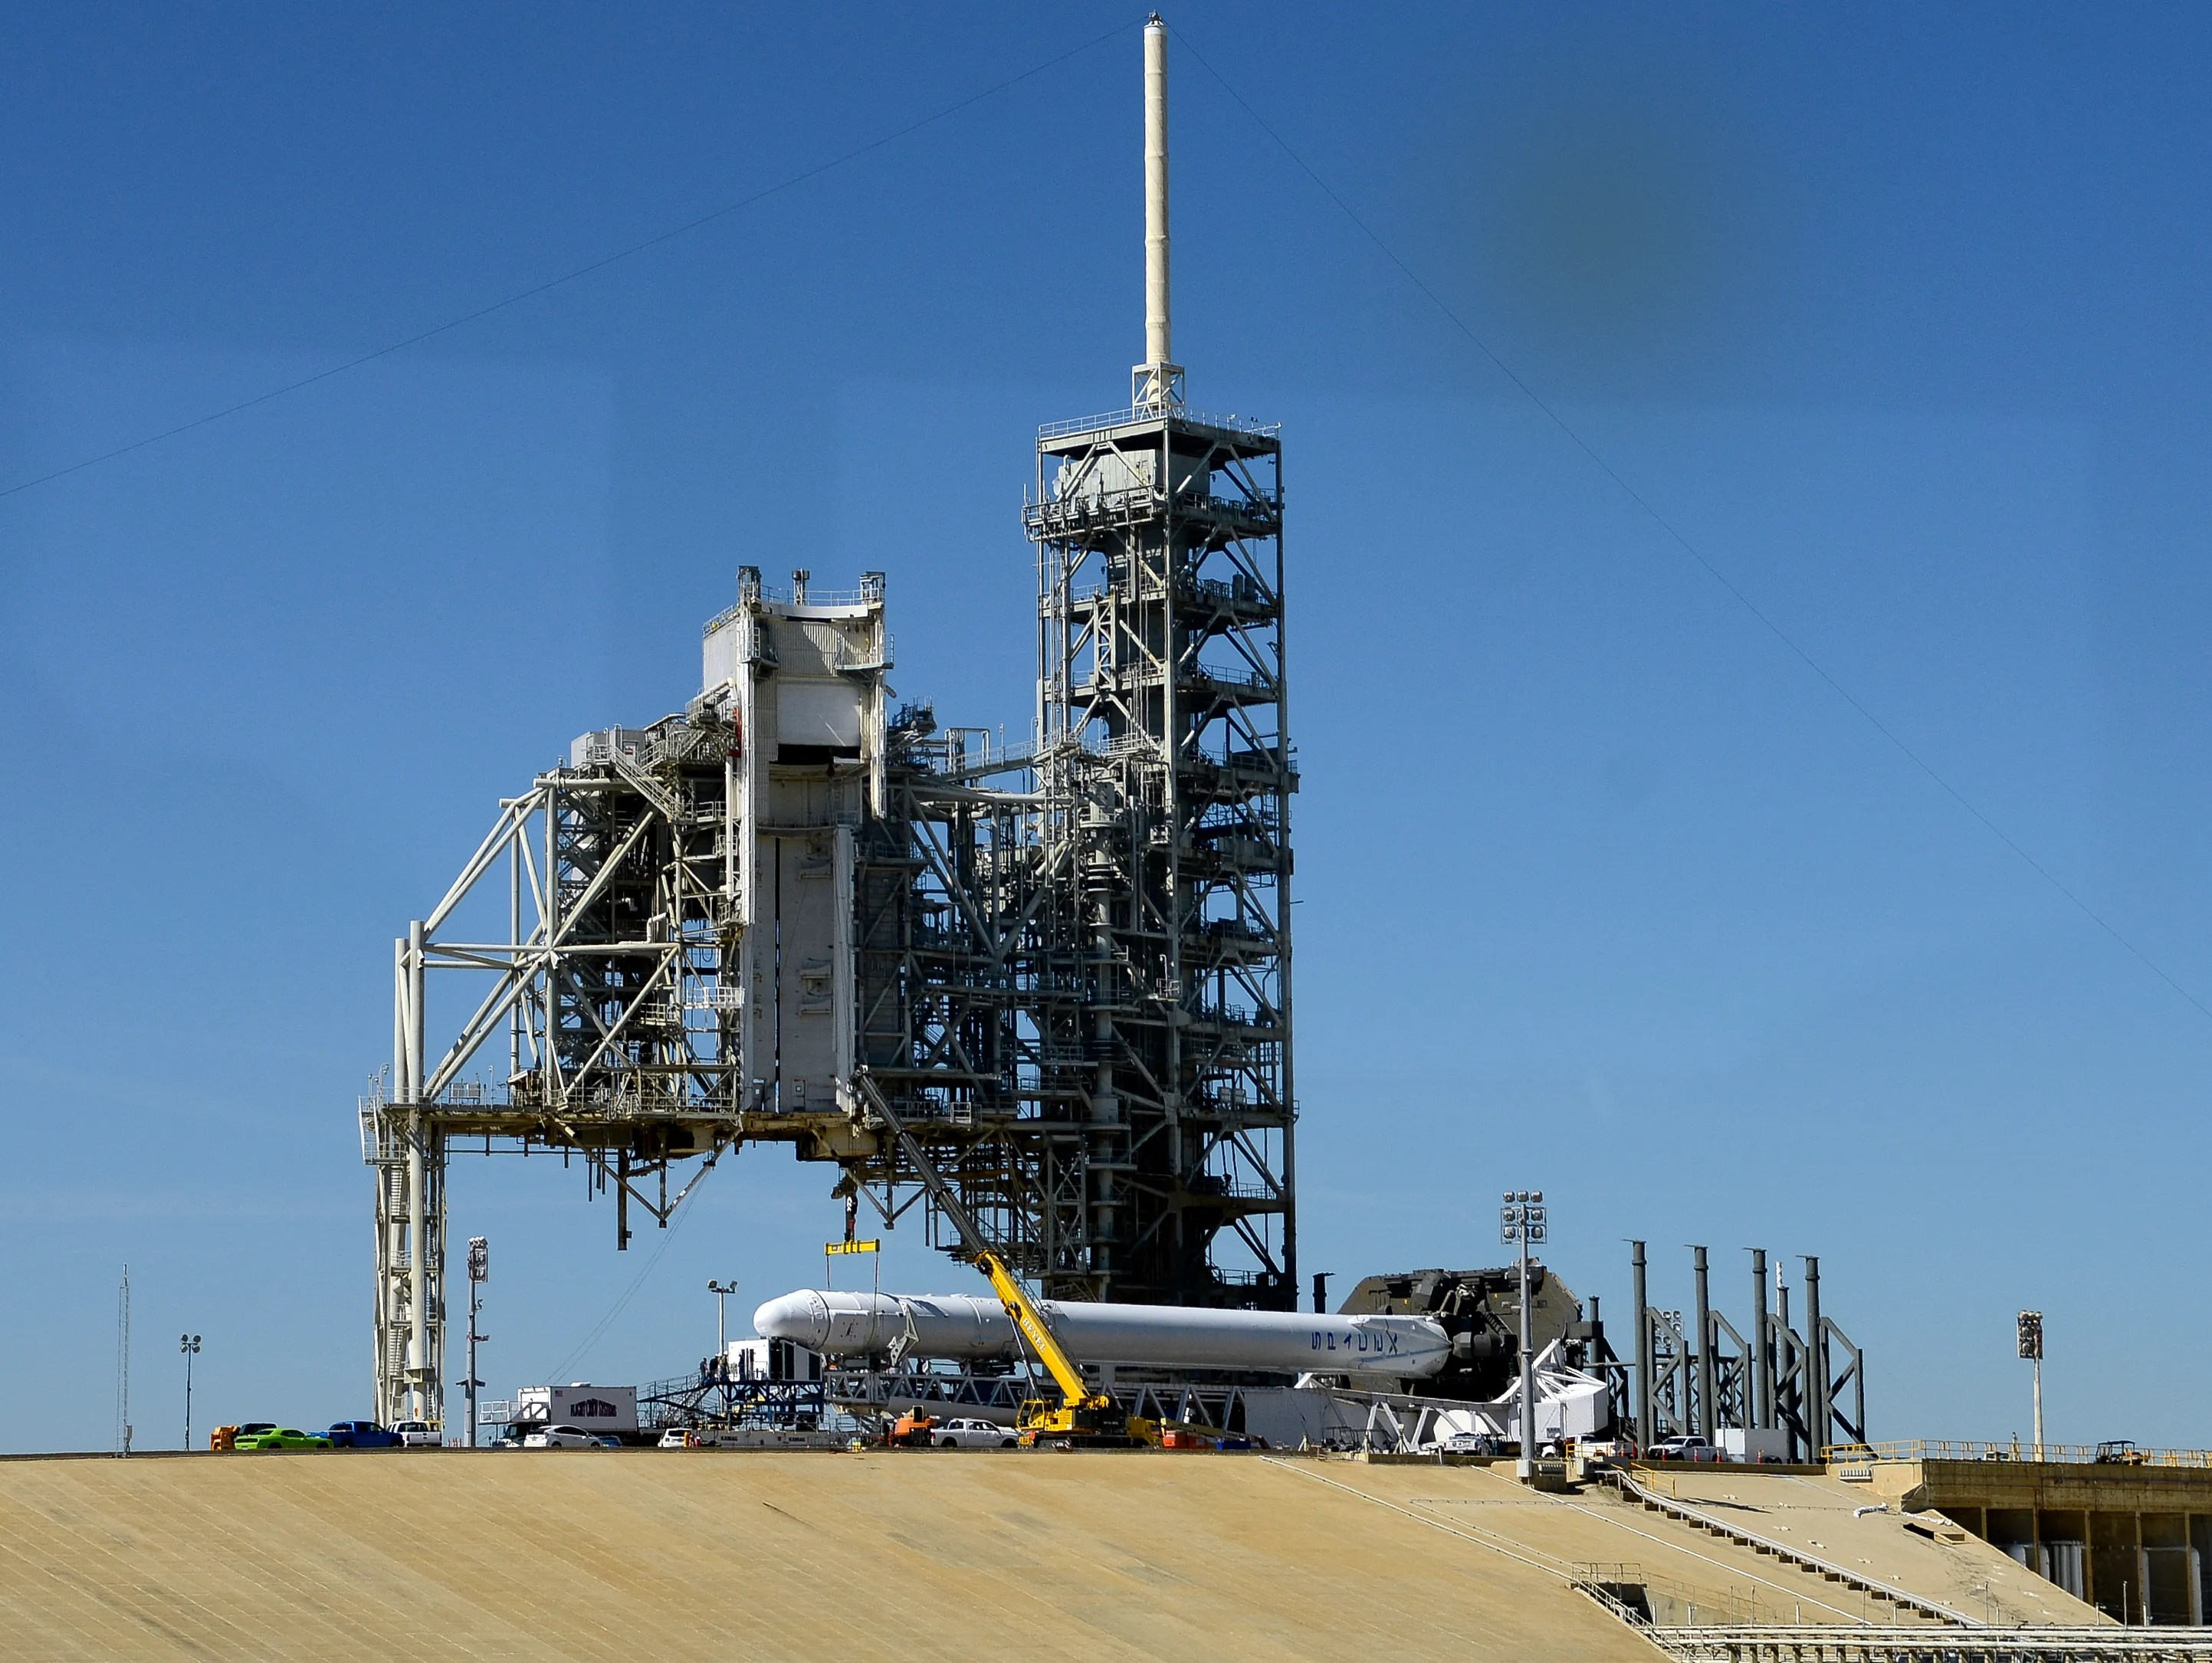 Spacex Falcon 9 Launch Scrubbed Due To Technical Issues